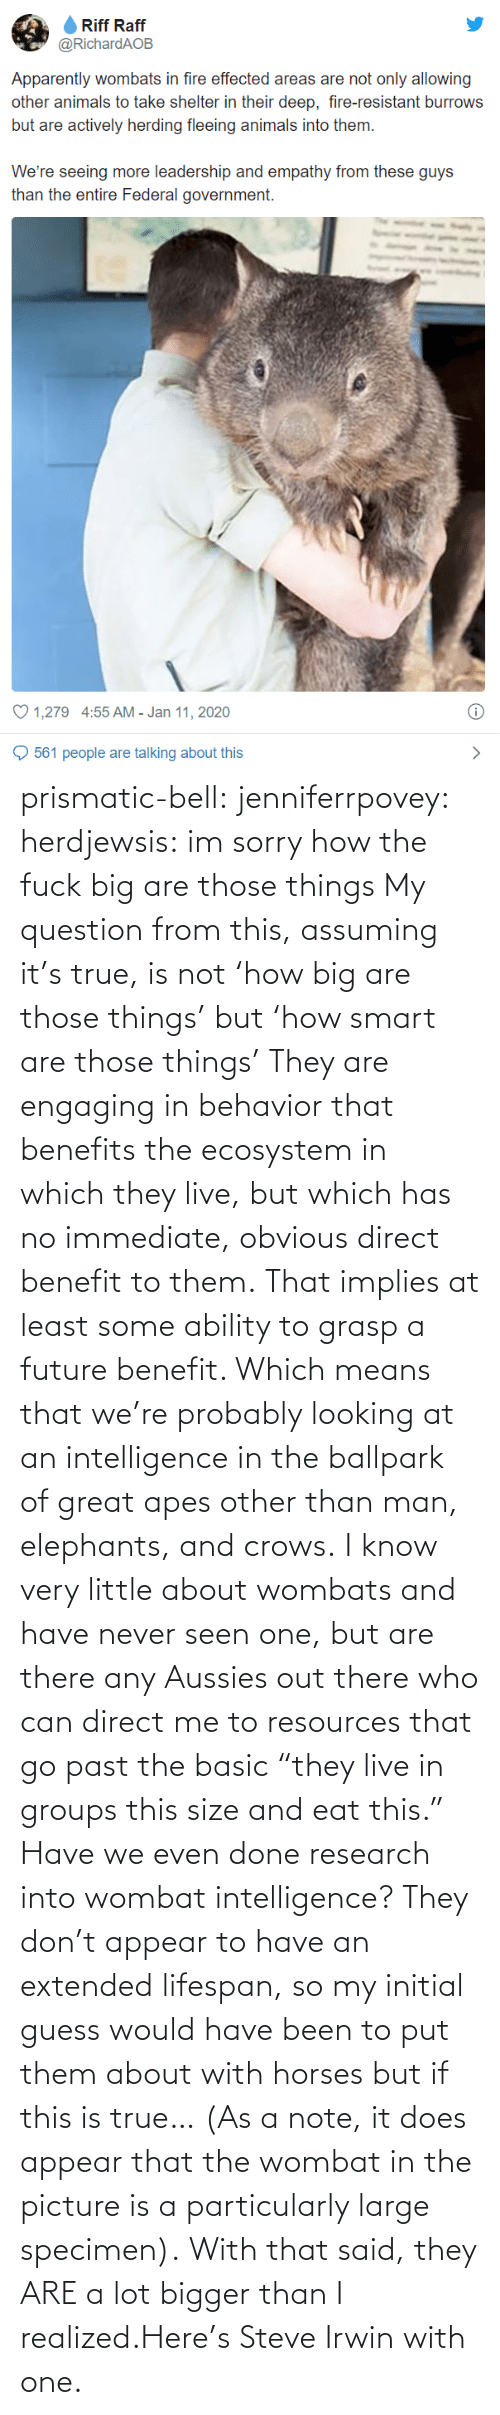 "seen: prismatic-bell:  jenniferrpovey: herdjewsis: im sorry how the fuck big are those things My question from this, assuming it's true, is not 'how big are those things' but 'how smart are those things' They are engaging in behavior that benefits the ecosystem in which they live, but which has no immediate, obvious direct benefit to them. That implies at least some ability to grasp a future benefit. Which means that we're probably looking at an intelligence in the ballpark of great apes other than man, elephants, and crows. I know very little about wombats and have never seen one, but are there any Aussies out there who can direct me to resources that go past the basic ""they live in groups this size and eat this."" Have we even done research into wombat intelligence? They don't appear to have an extended lifespan, so my initial guess would have been to put them about with horses but if this is true… (As a note, it does appear that the wombat in the picture is a particularly large specimen).  With that said, they ARE a lot bigger than I realized.Here's Steve Irwin with one."